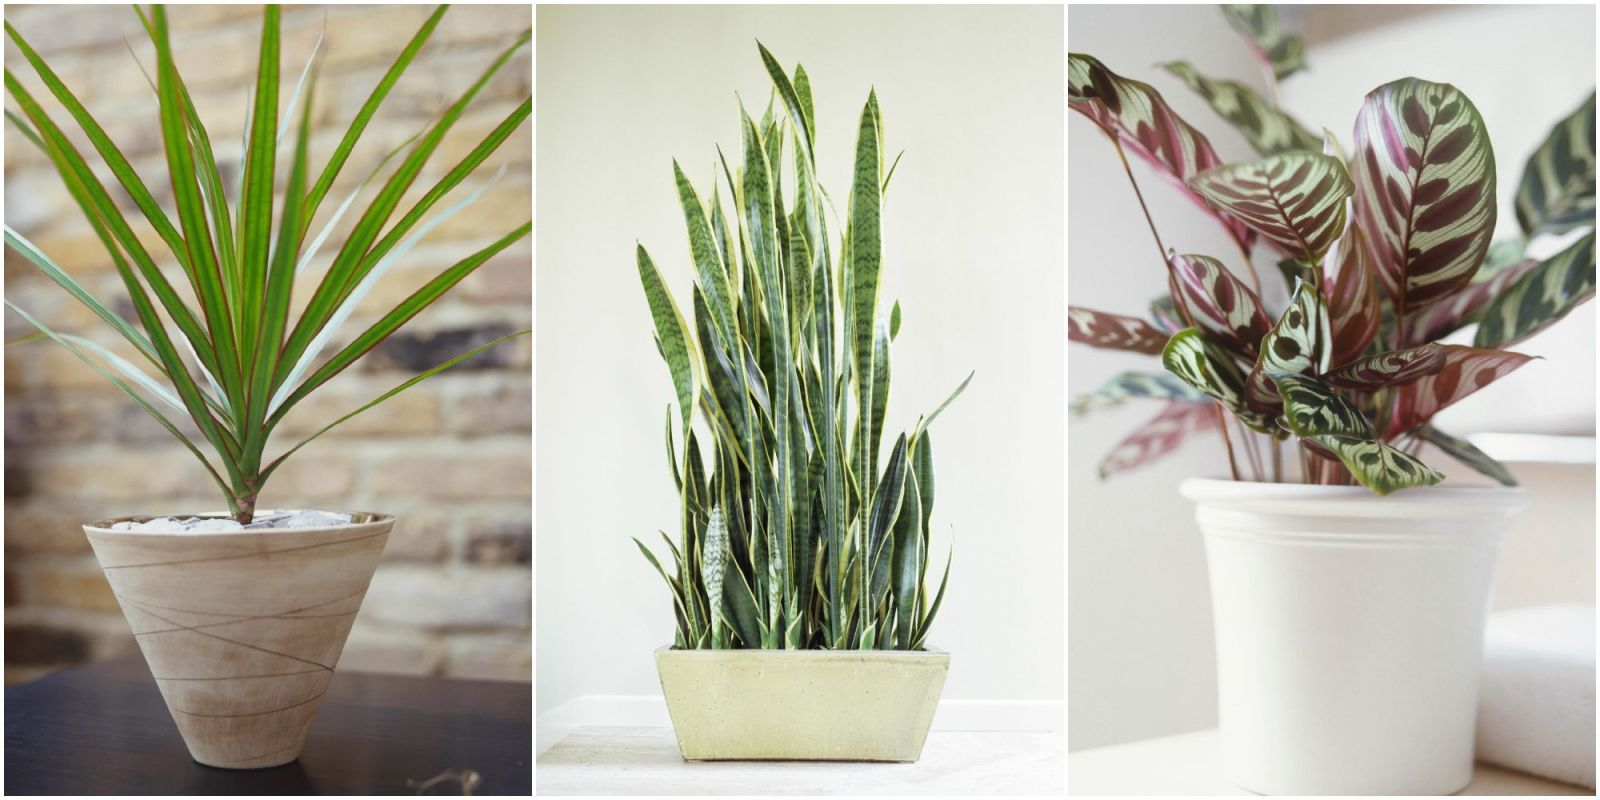 Tall House Plants Low Light low light houseplants - plants that don't require much light